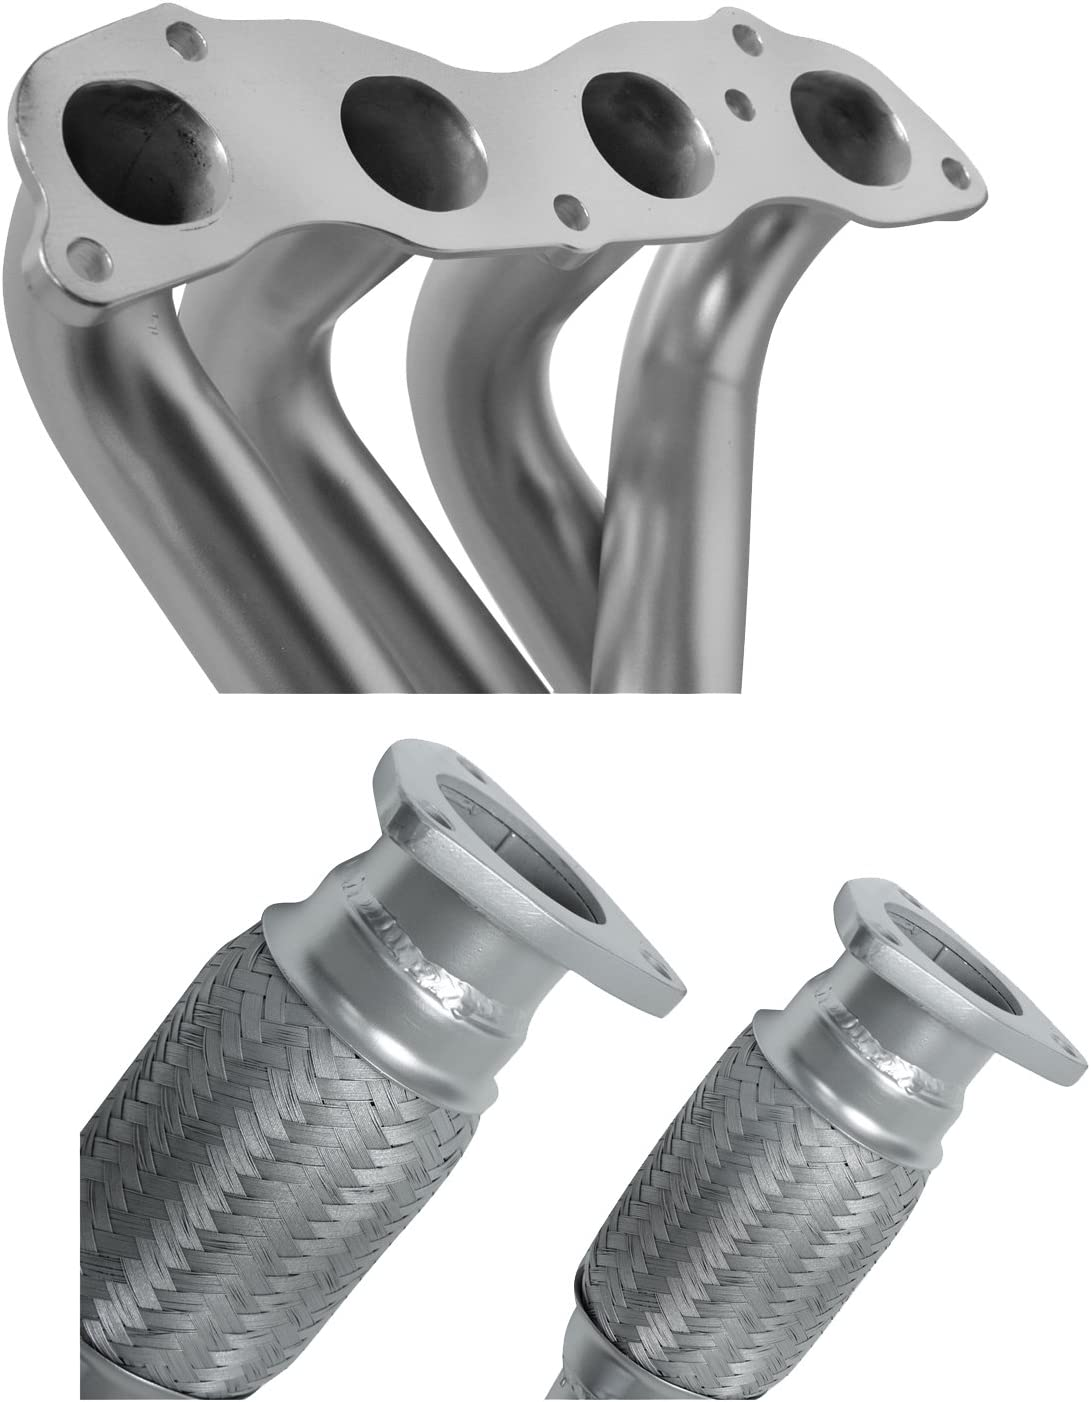 Civic CRX DC Sports AHR6516 Ceramic Coated Stainless Steel 4-2-1 Racing Header fits 1994-01 Accura Integra and 1994-01 Honda All Models of Accord Silver Del Sol